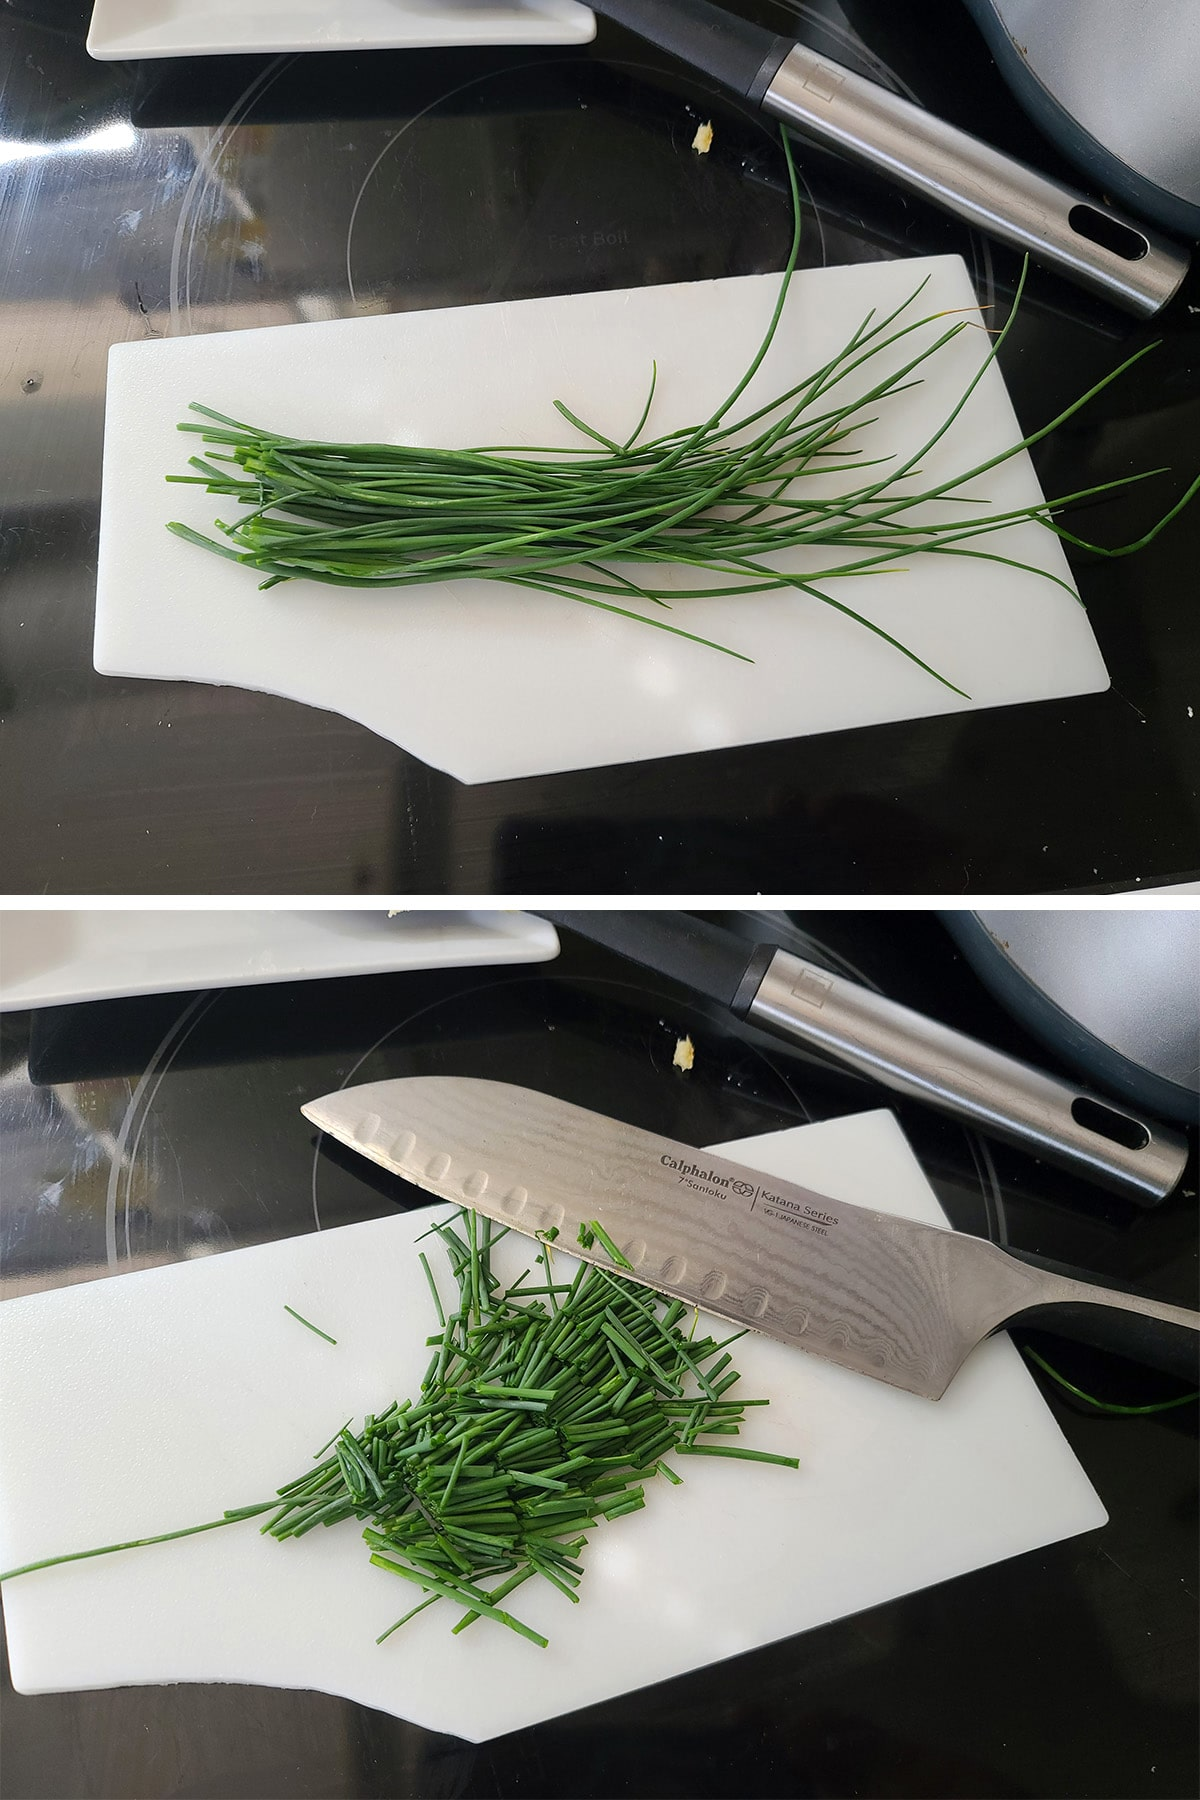 A white cutting board with chives being chopped on it.